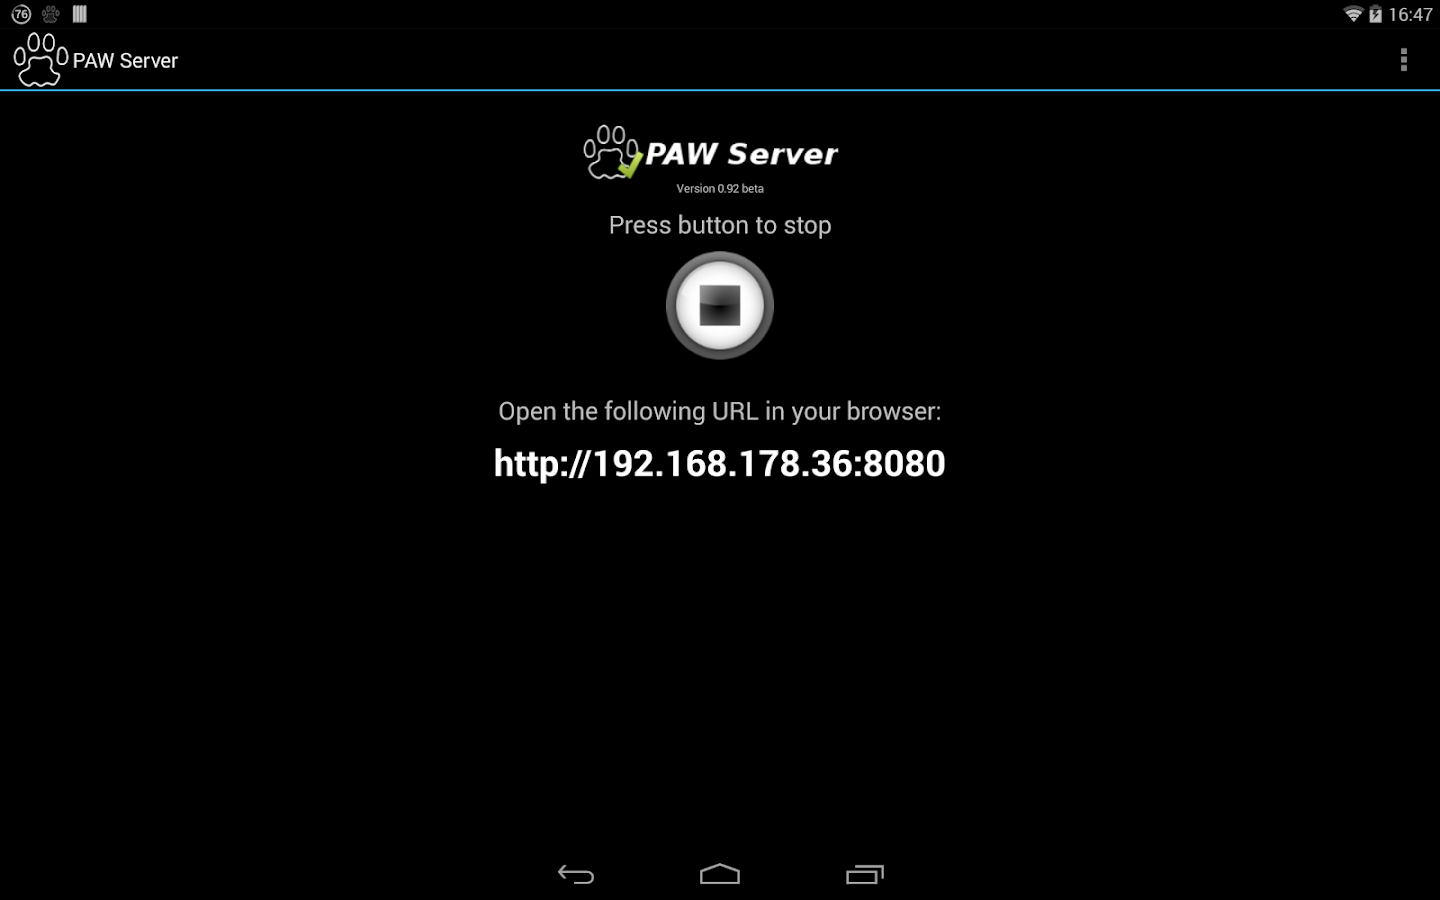 PAW Server for Android - screenshot